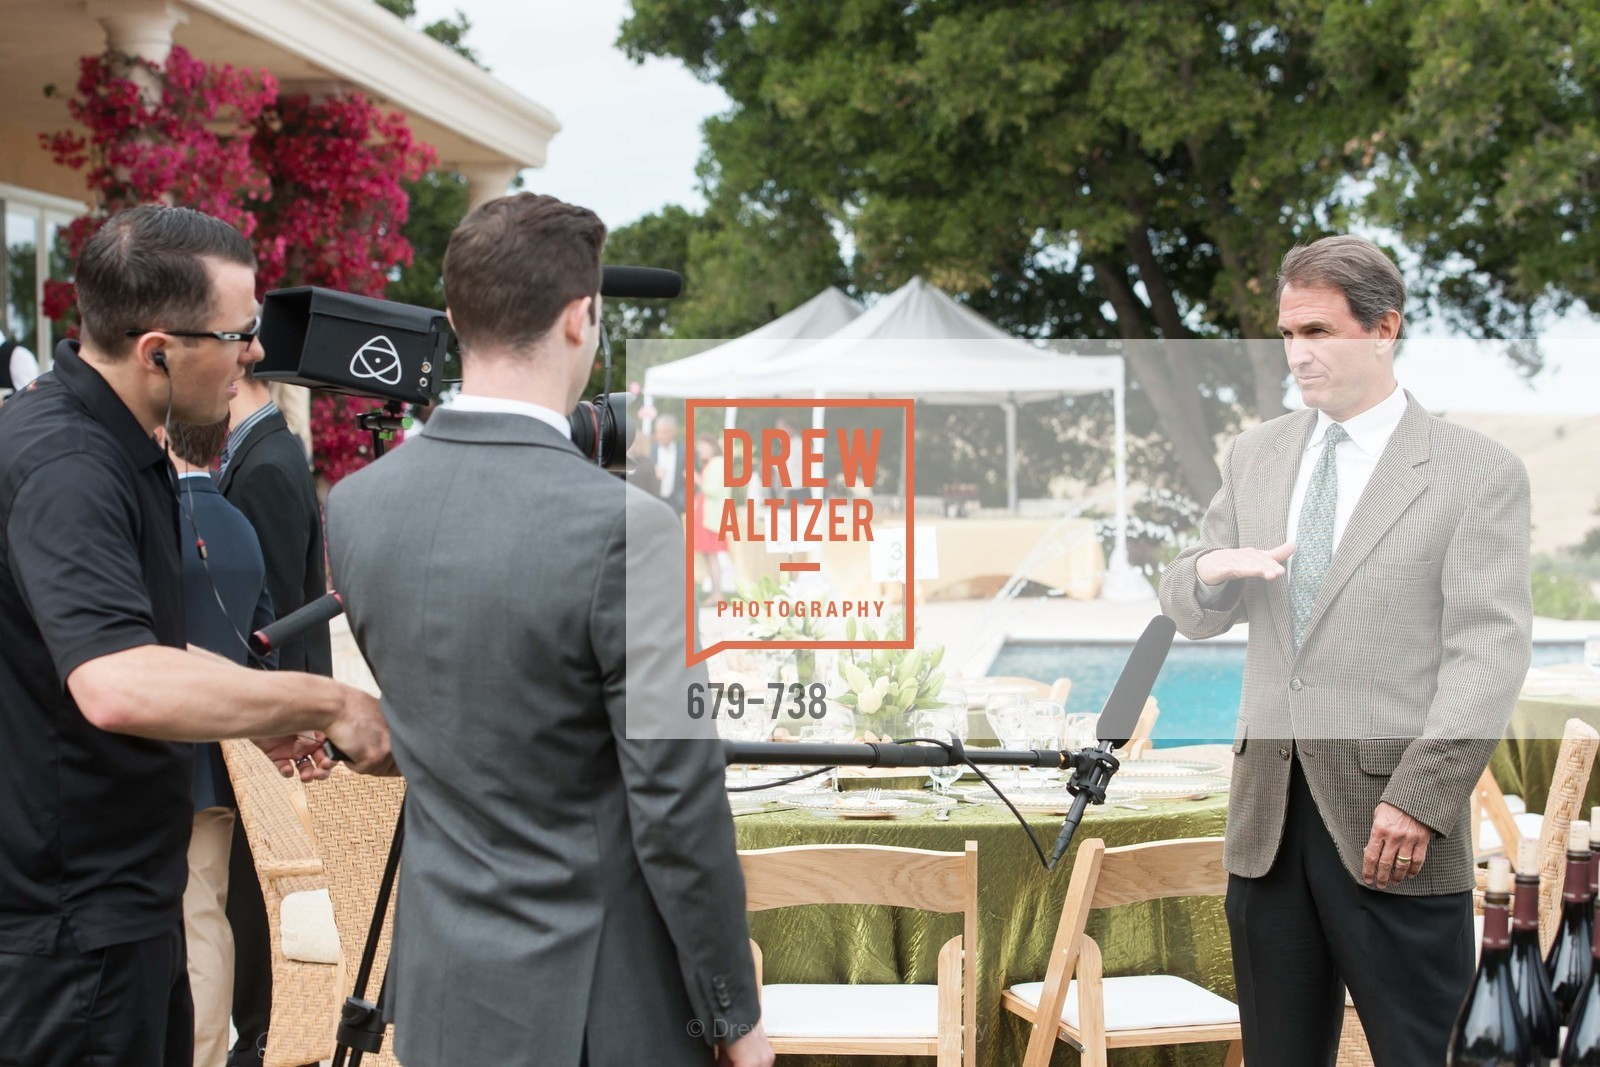 Extras, LymeAid 2015, May 17th, 2015, Photo,Drew Altizer, Drew Altizer Photography, full-service agency, private events, San Francisco photographer, photographer california